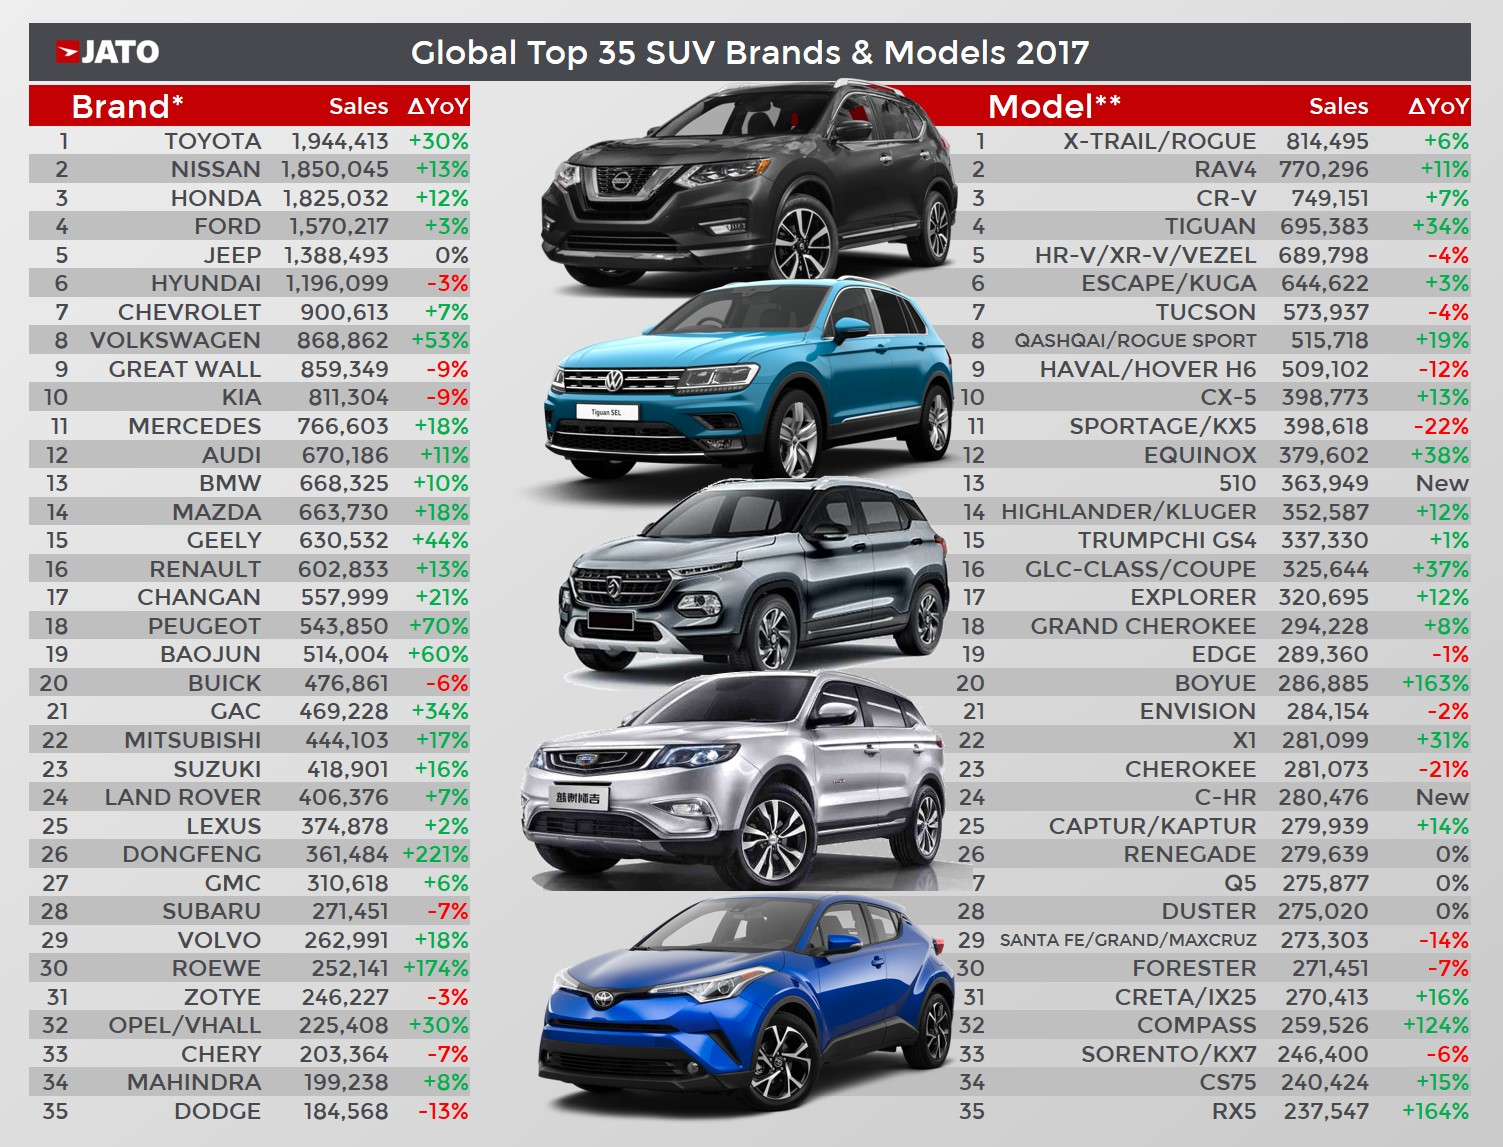 The Global Domination Of Suvs Continues In 2017 Jato